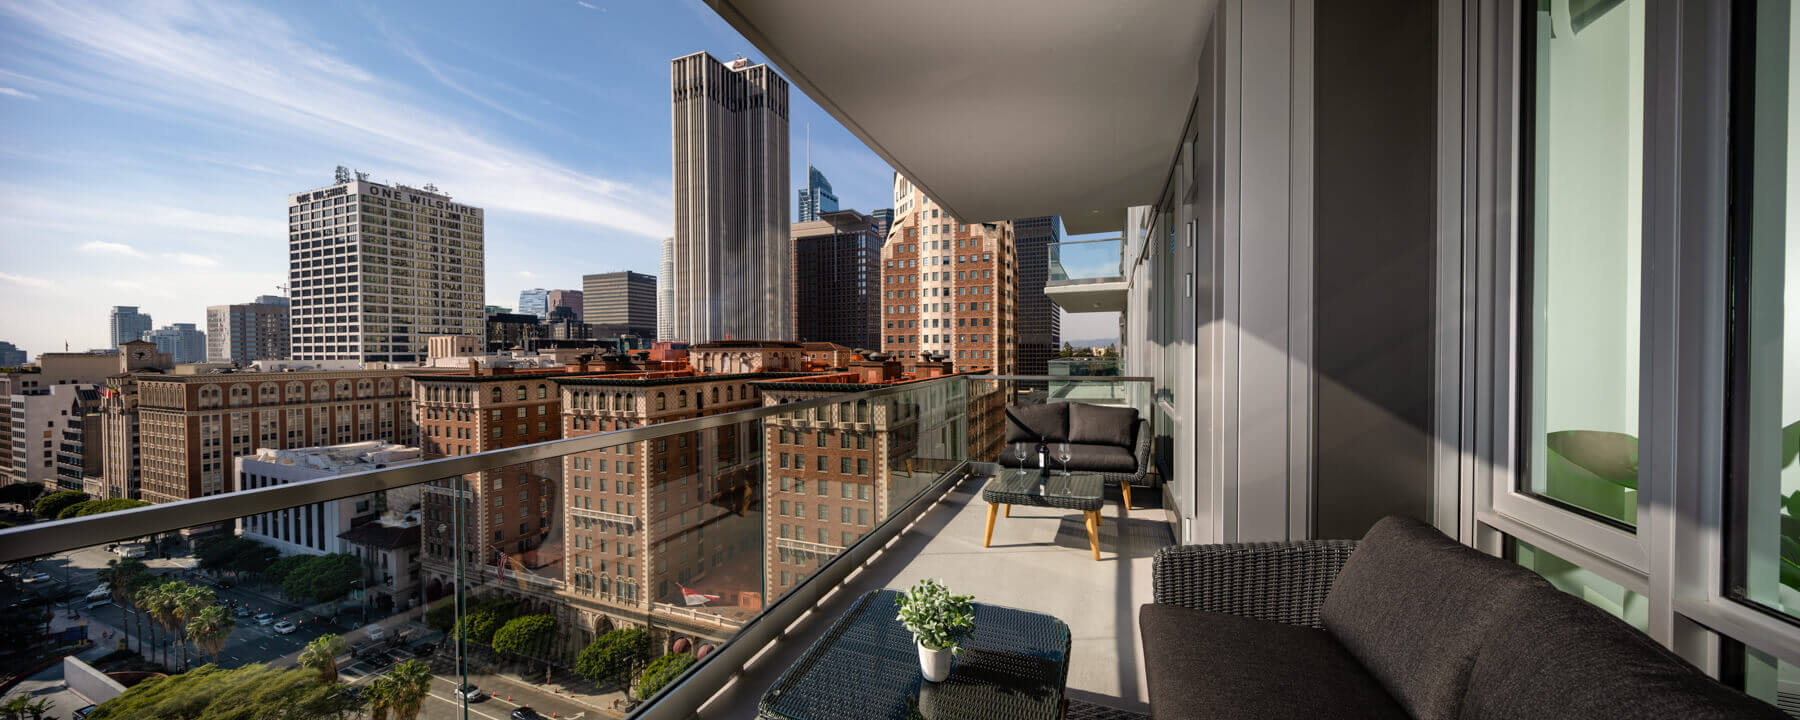 Pet Friendly Apartments in Downtown Los Angeles, CA - Park Fifth Tower Spacious Balcony with Glass Enclosure Overlooking Downtown Los Angeles